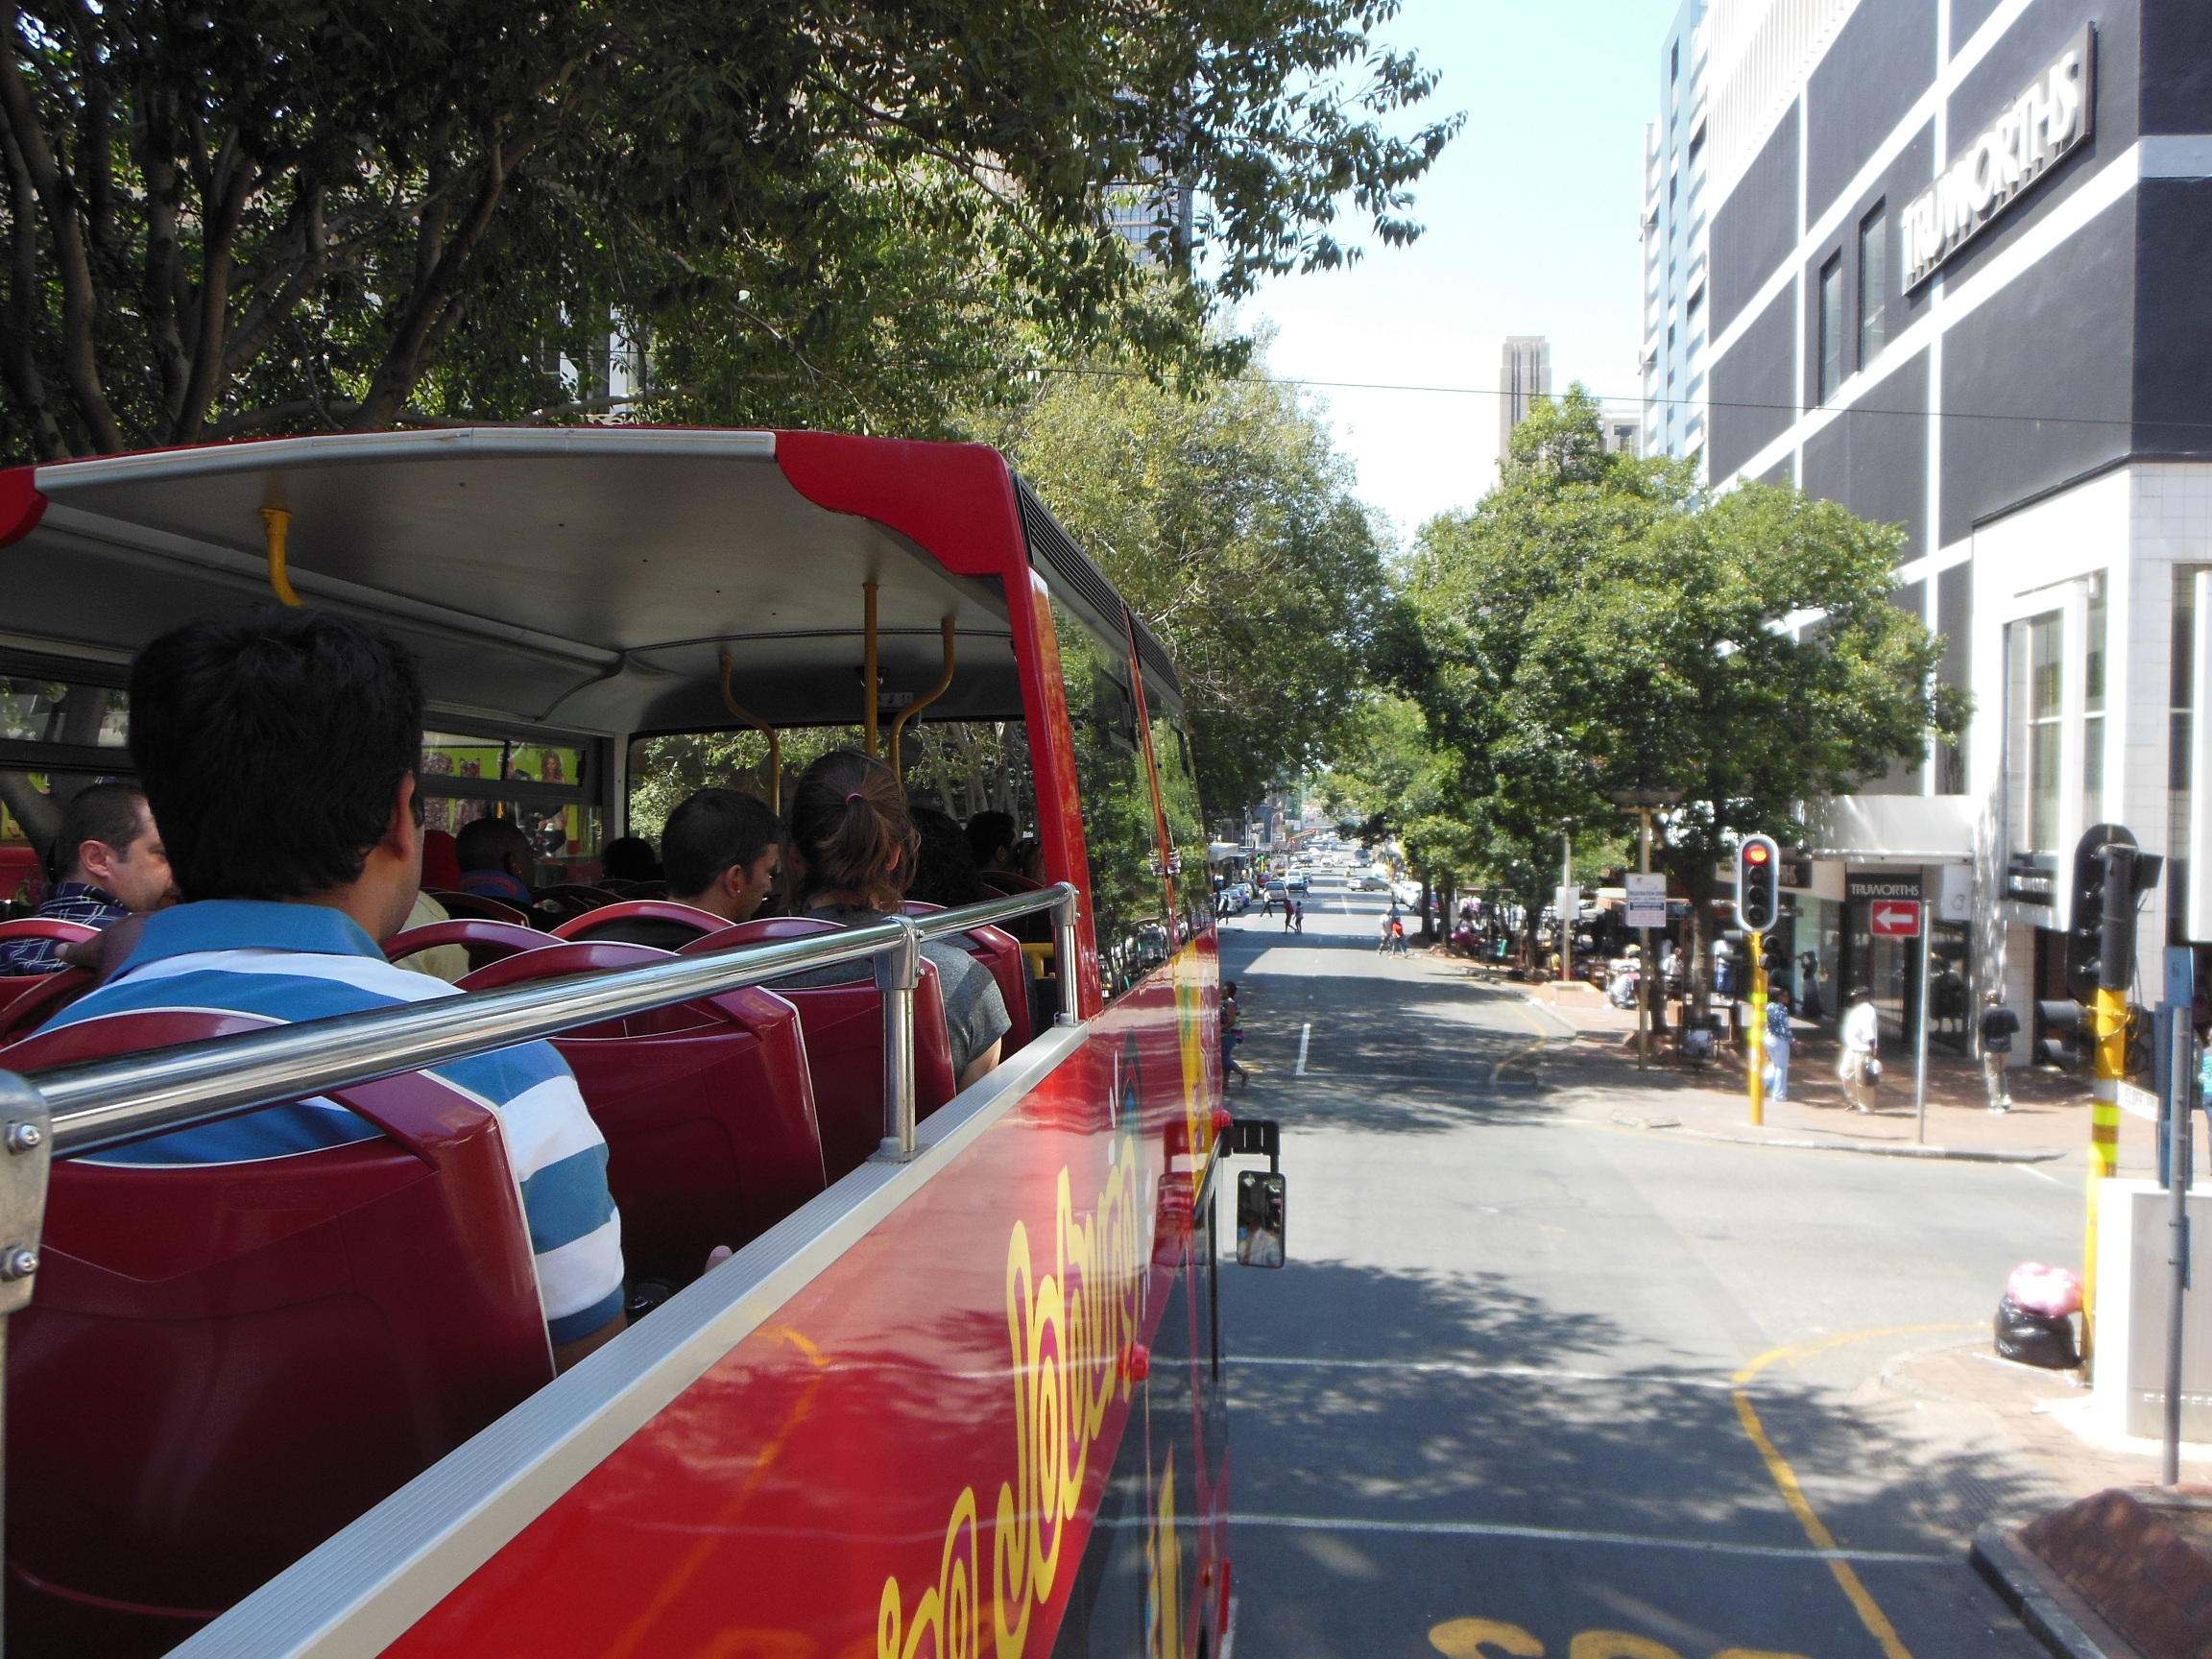 The bus makes its way through the narrow and busy streets. Pic: Anina Mumm